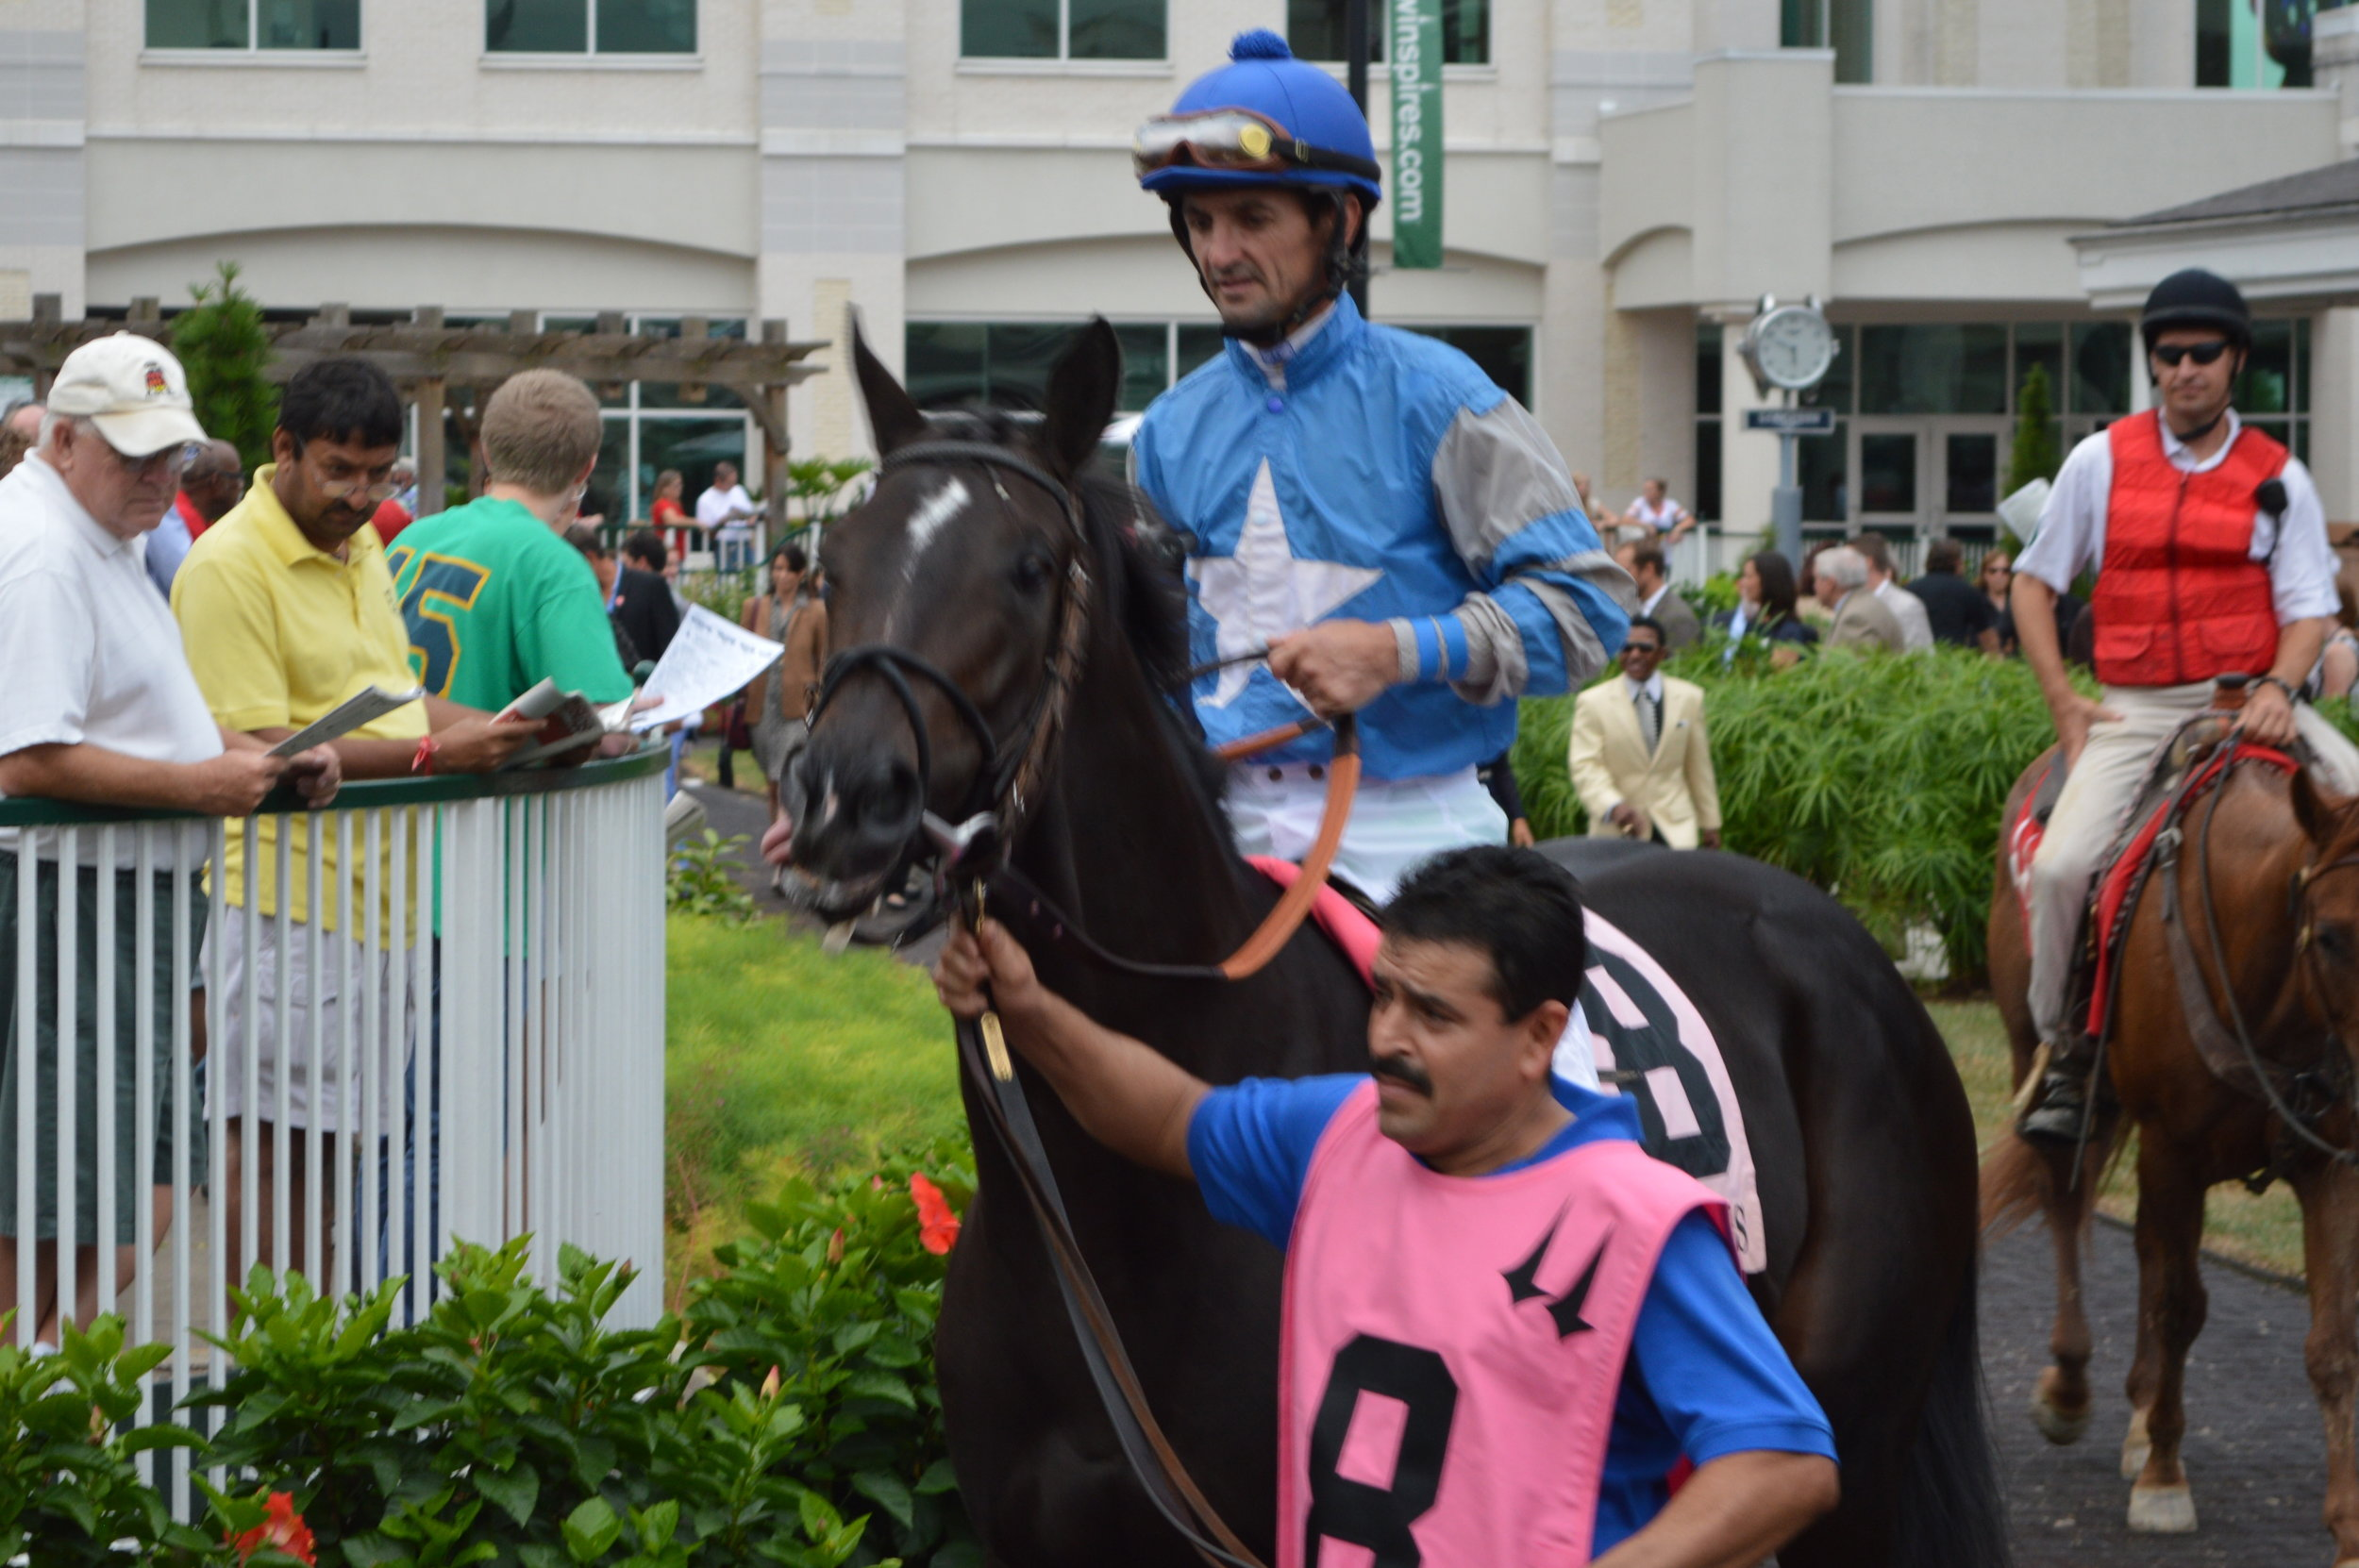 Not This Time and Robby Albarado, winners of the Iroquois Stakes.